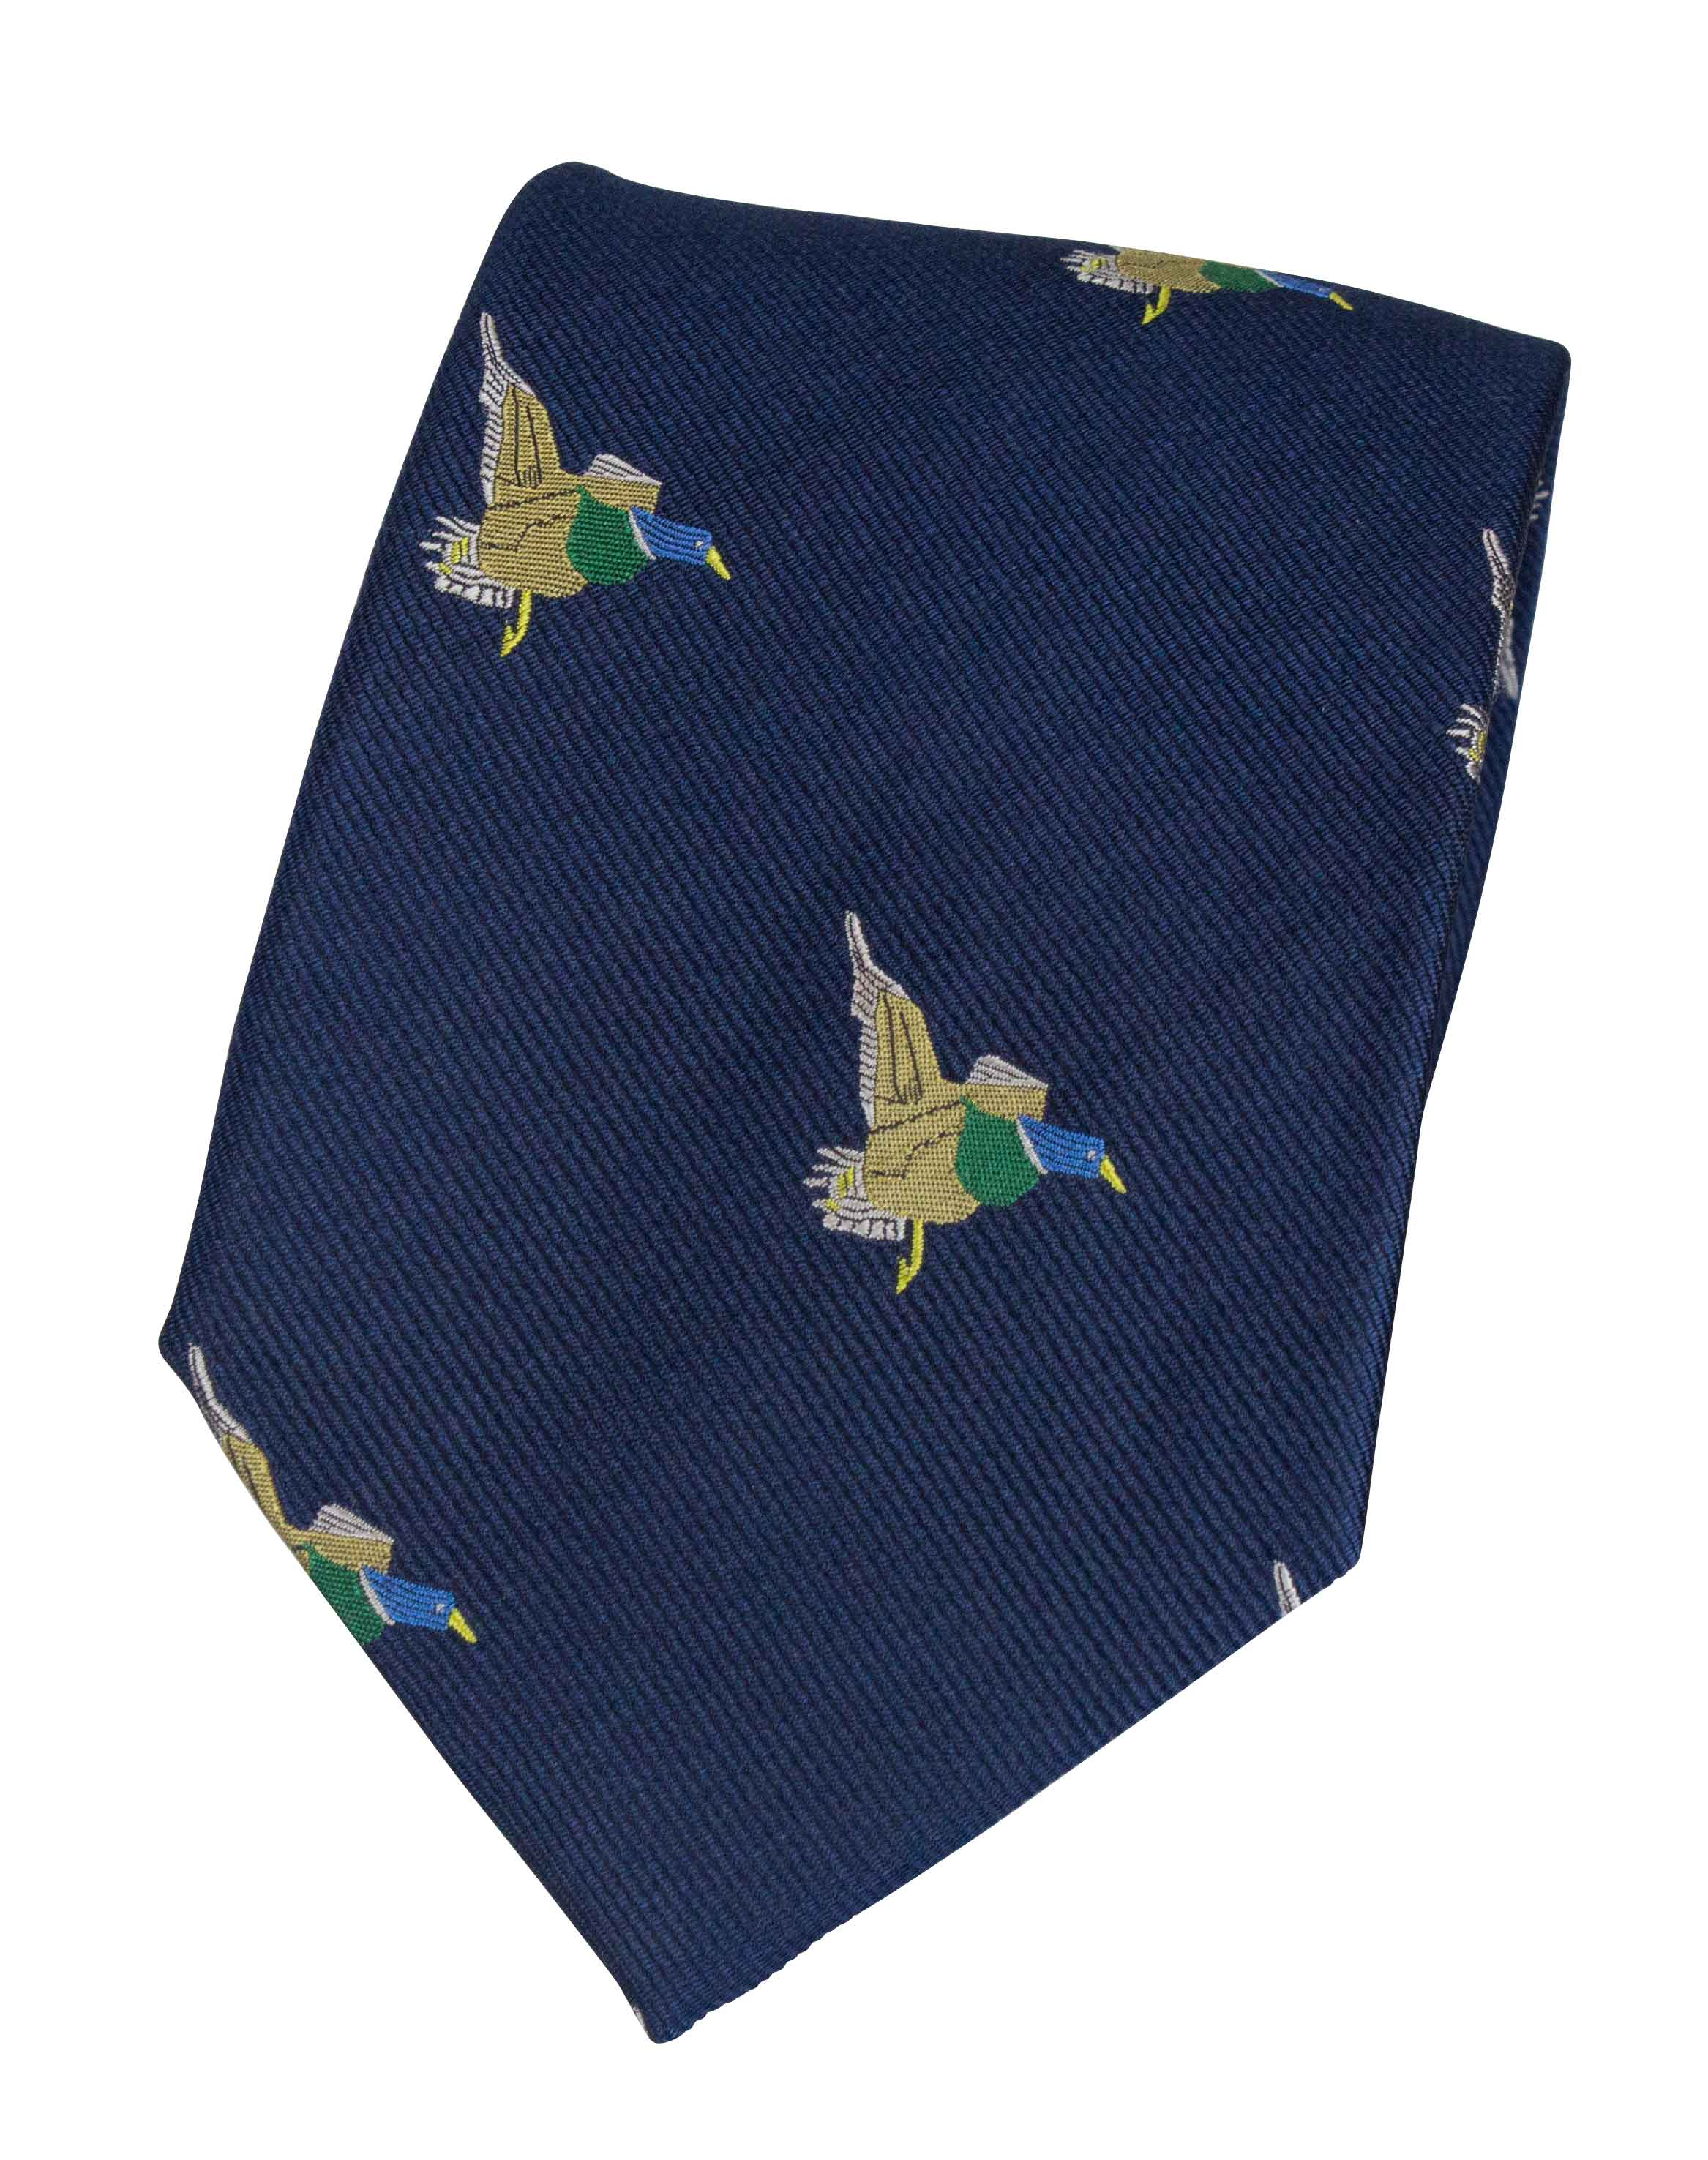 GT10 - 100% Silk Woven Tie / Duck - NAVY - Oxford Blue